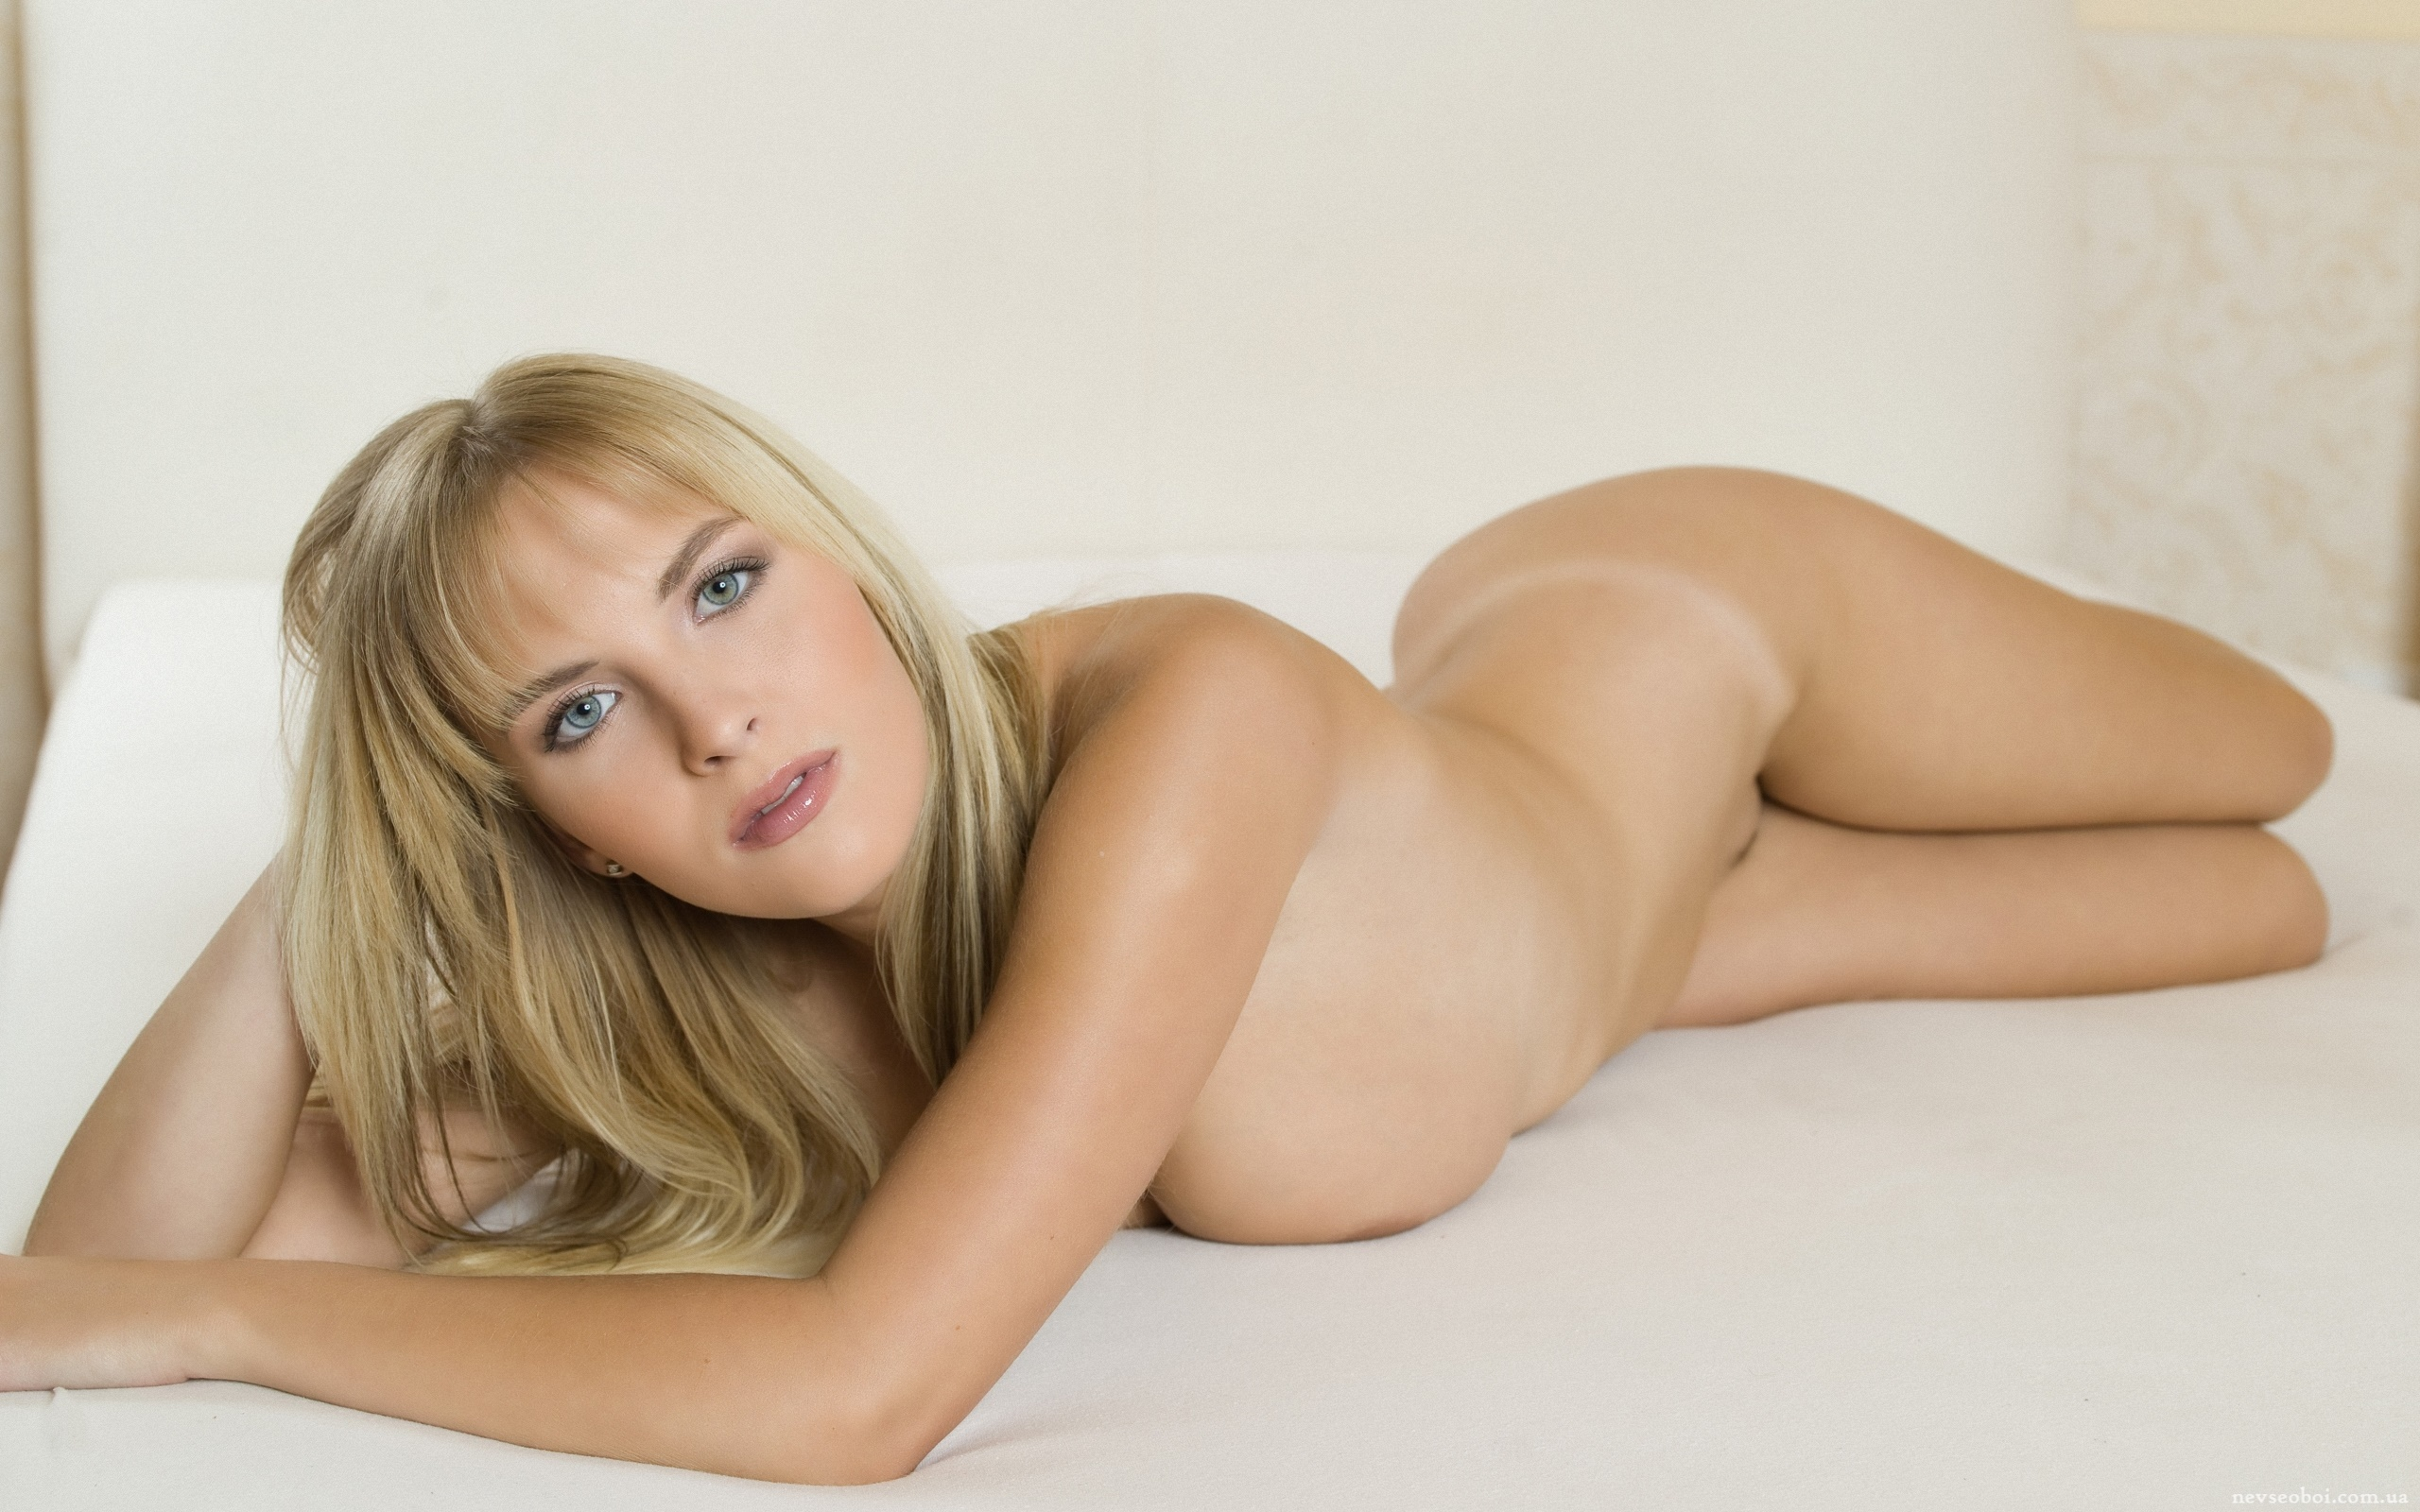 Sexy naked blonde girl and man — pic 7